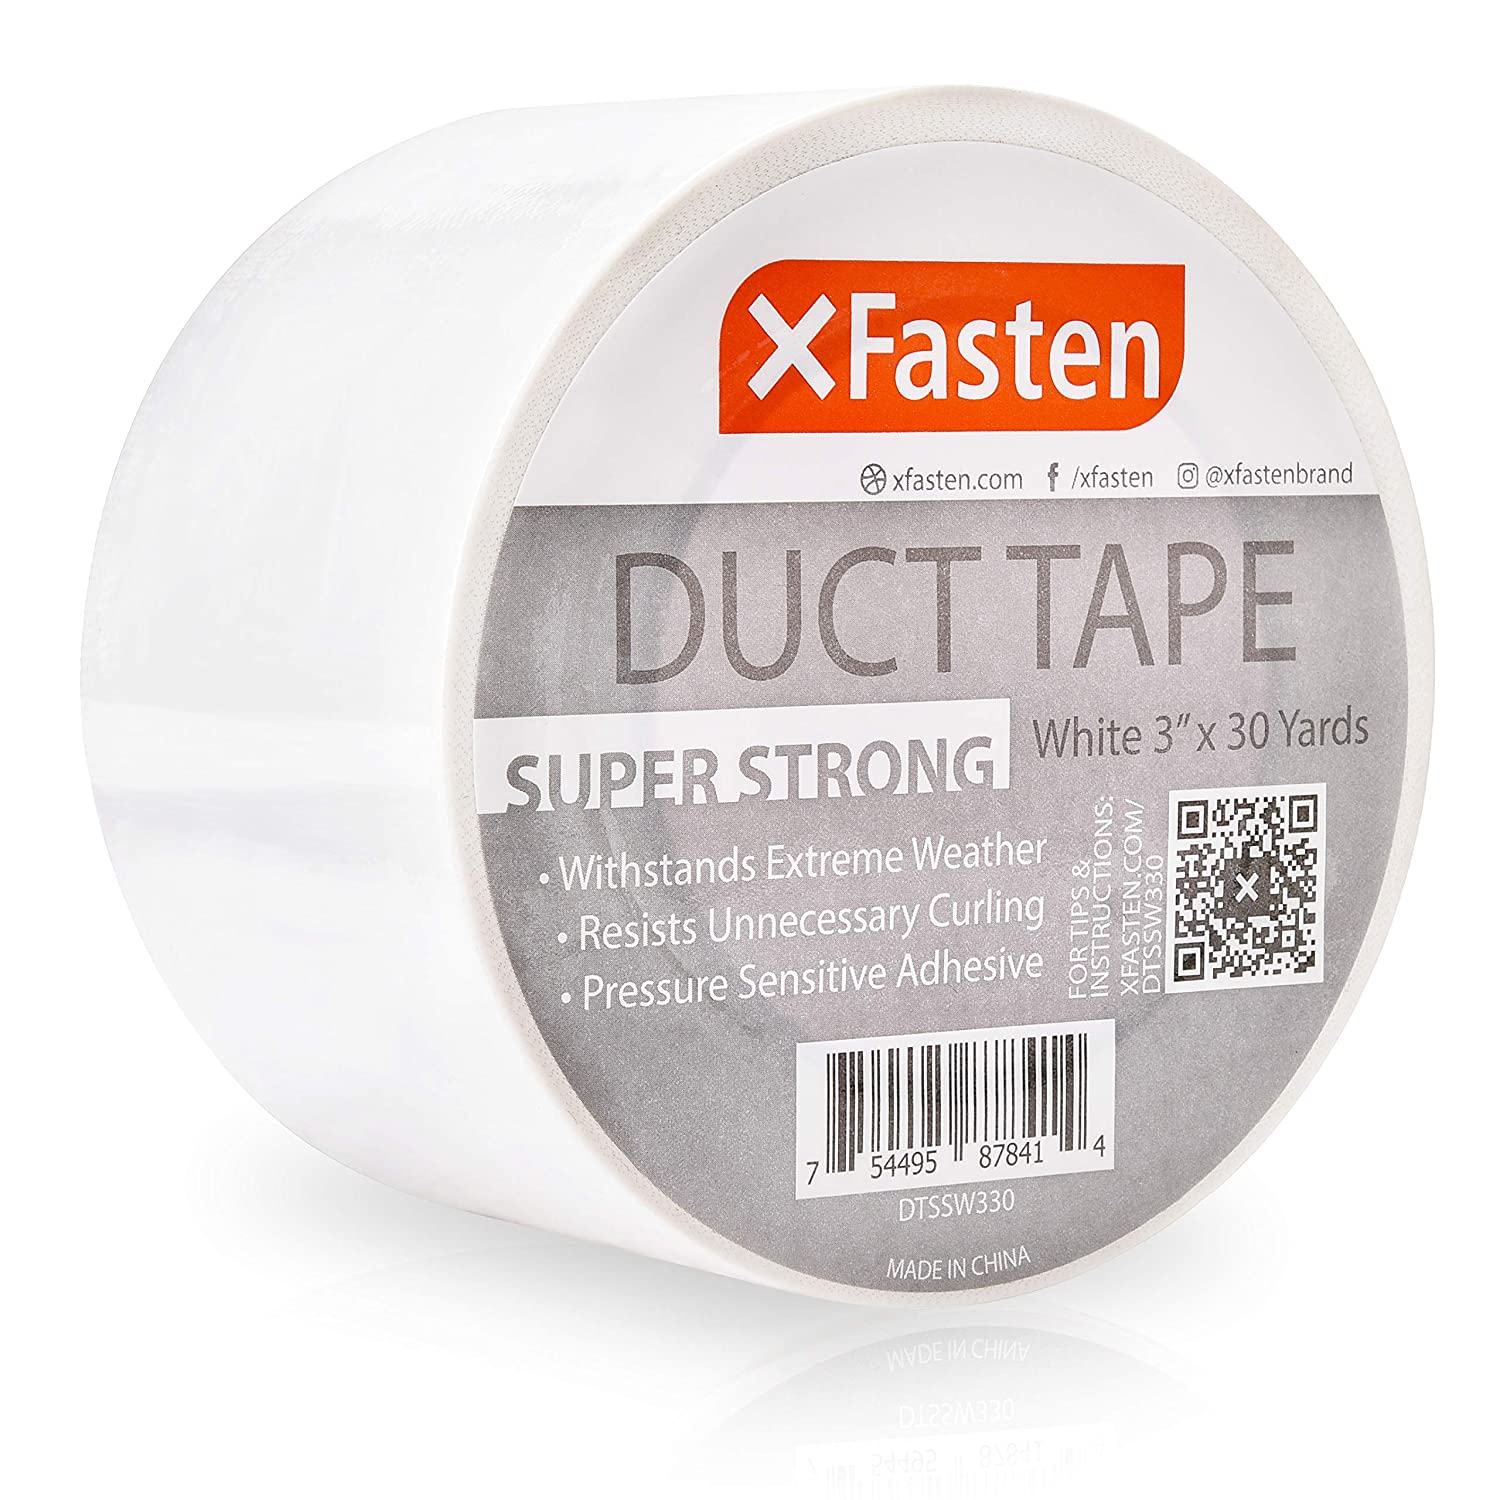 "XFasten Super Strong Duct Tape, White, 3"" x 30 Yards, Waterproof Duct Tape for Outdoor, Indoor, School and Industrial Use"